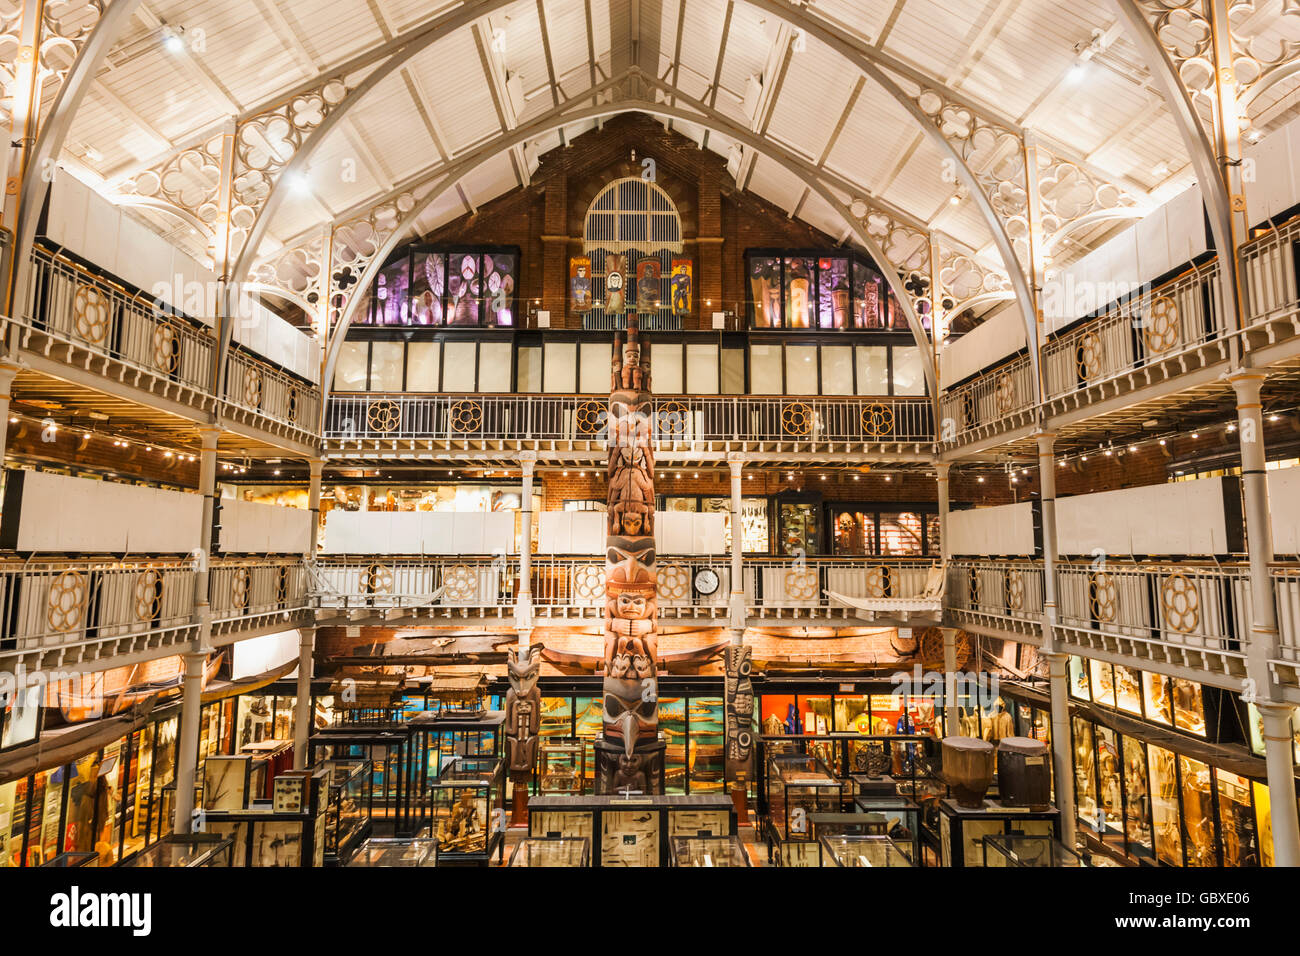 England, Oxfordshire, Oxford, Pitt Rivers Museum, Interior View - Stock Image